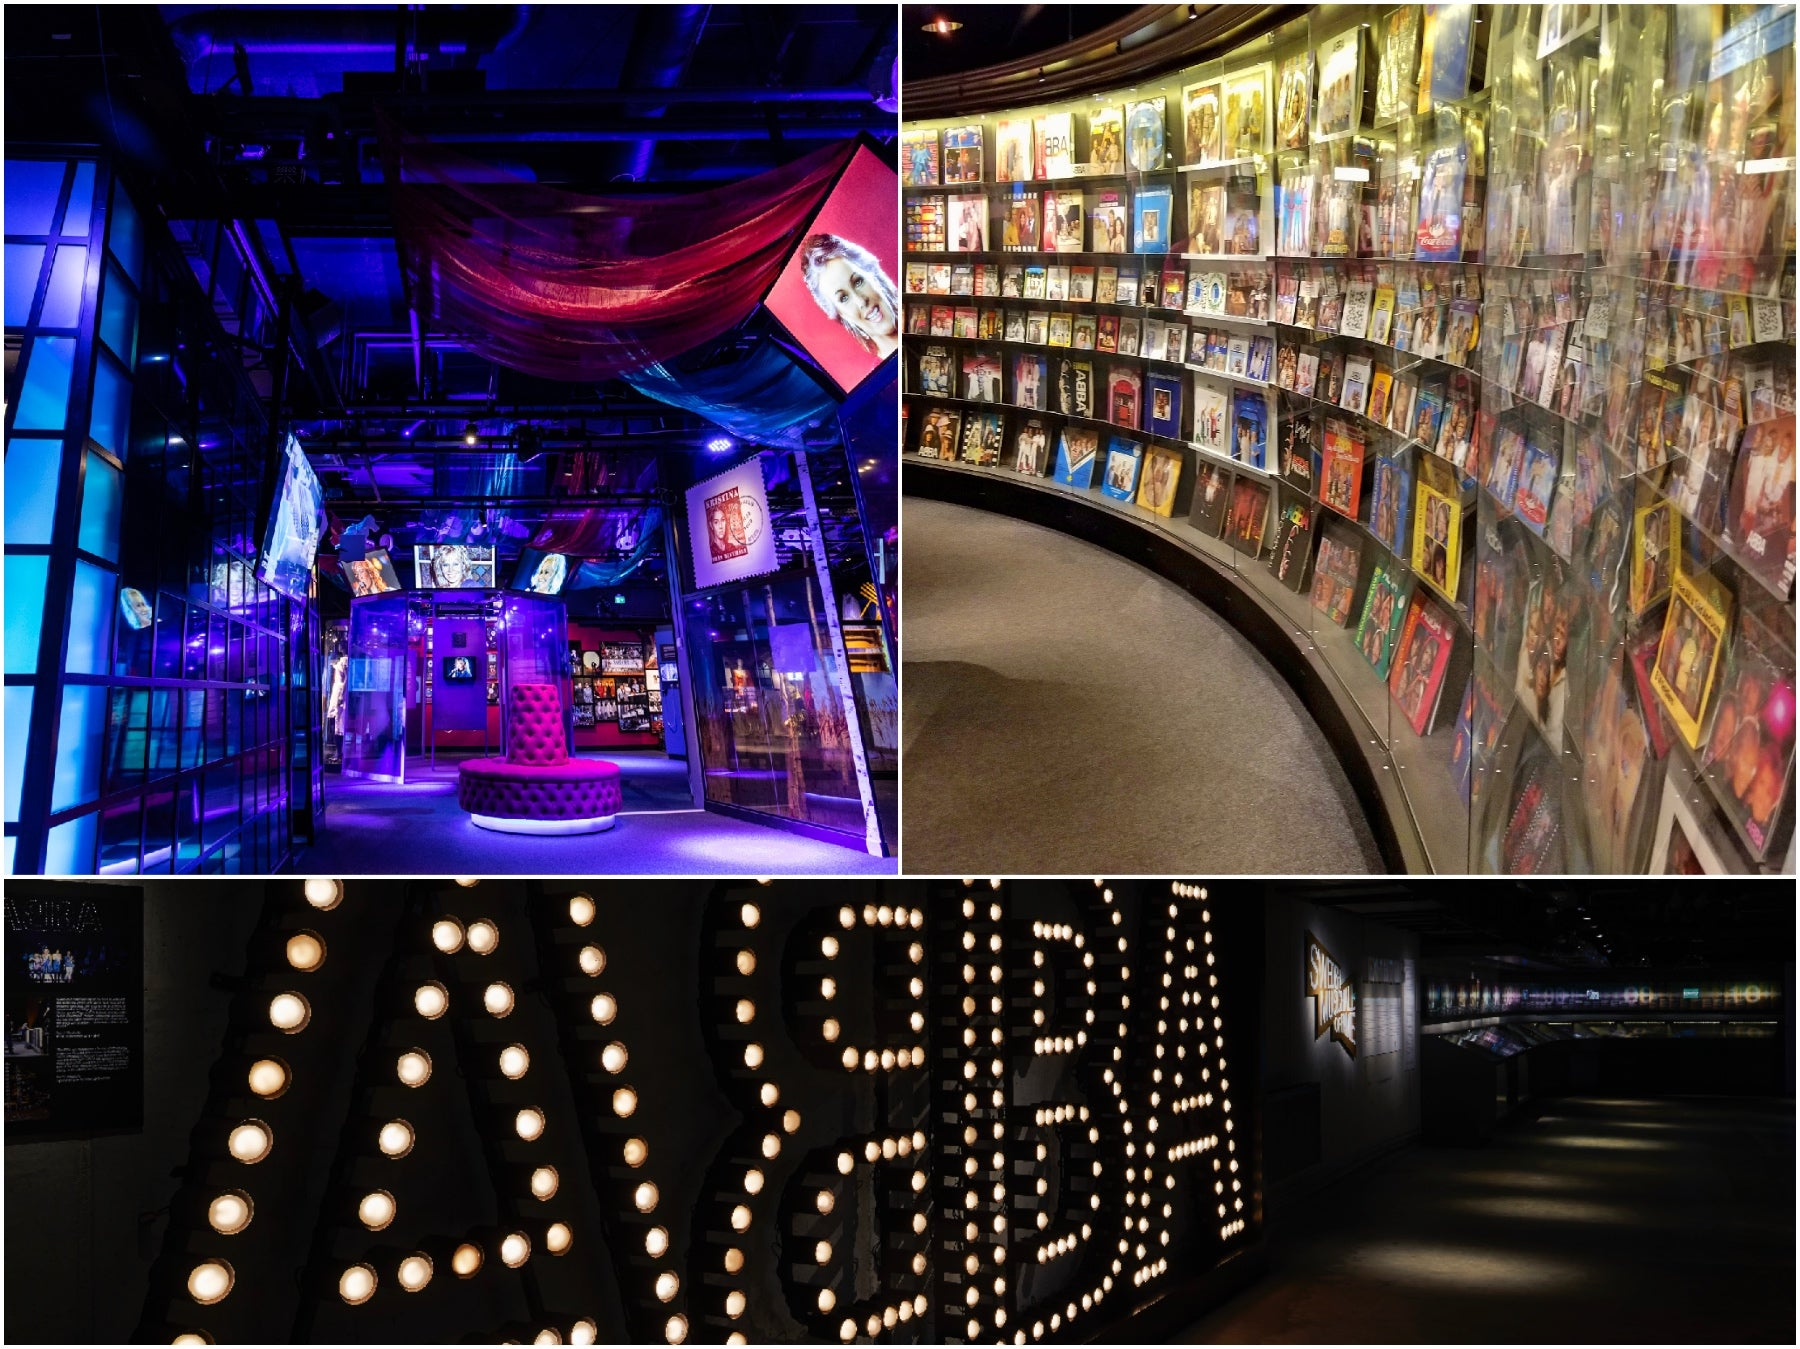 Inside the ABBA museum in Stockholm, Sweden